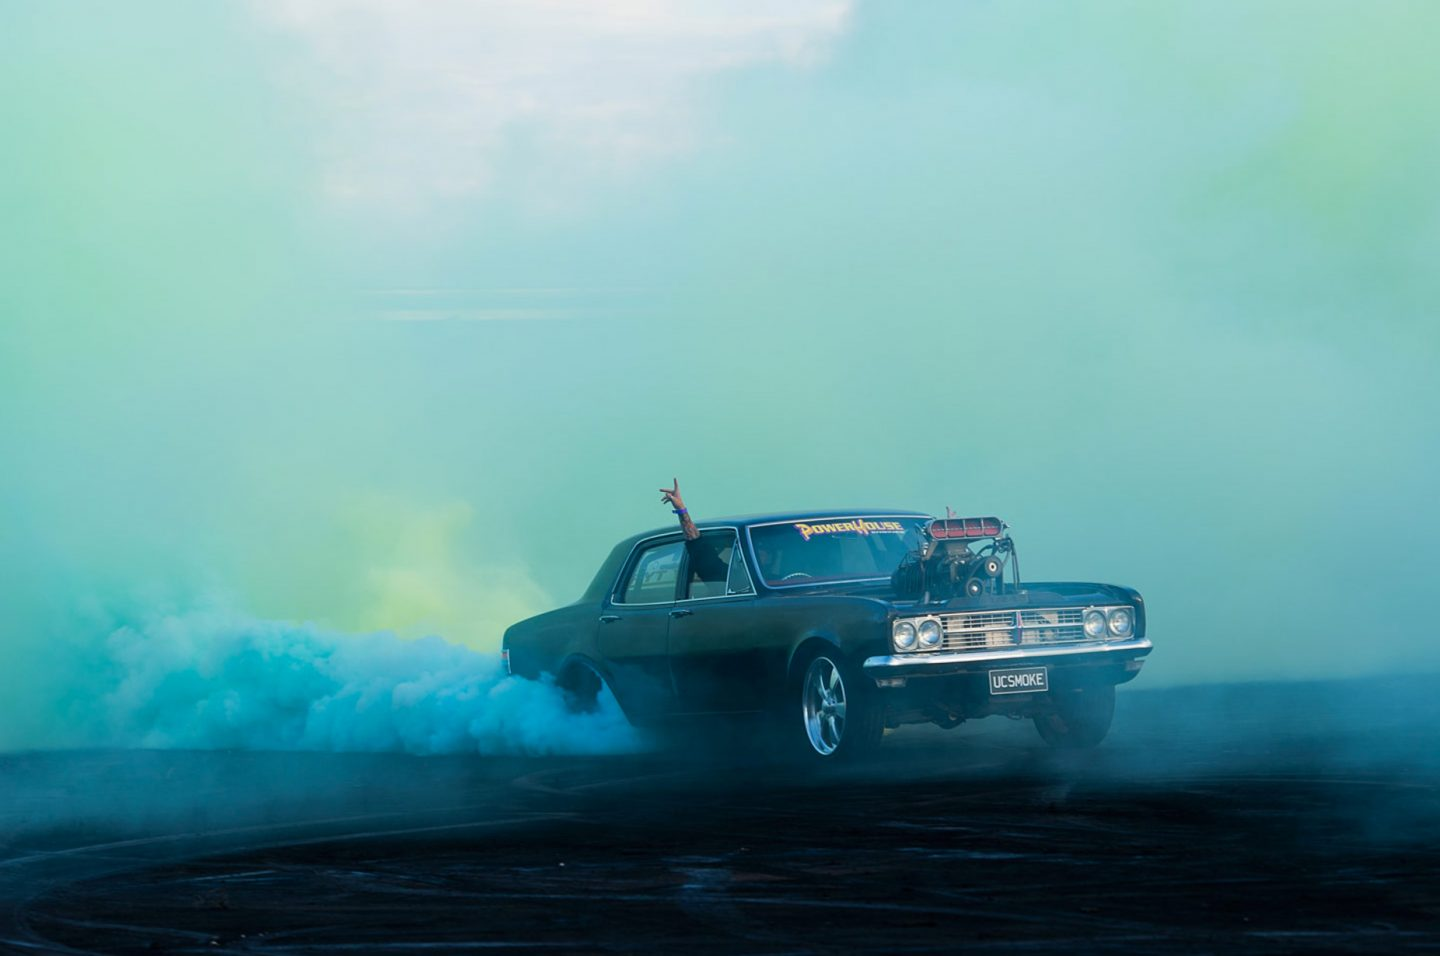 iGNANT_Photography_Burnout_Series_Simon_Davidson_15